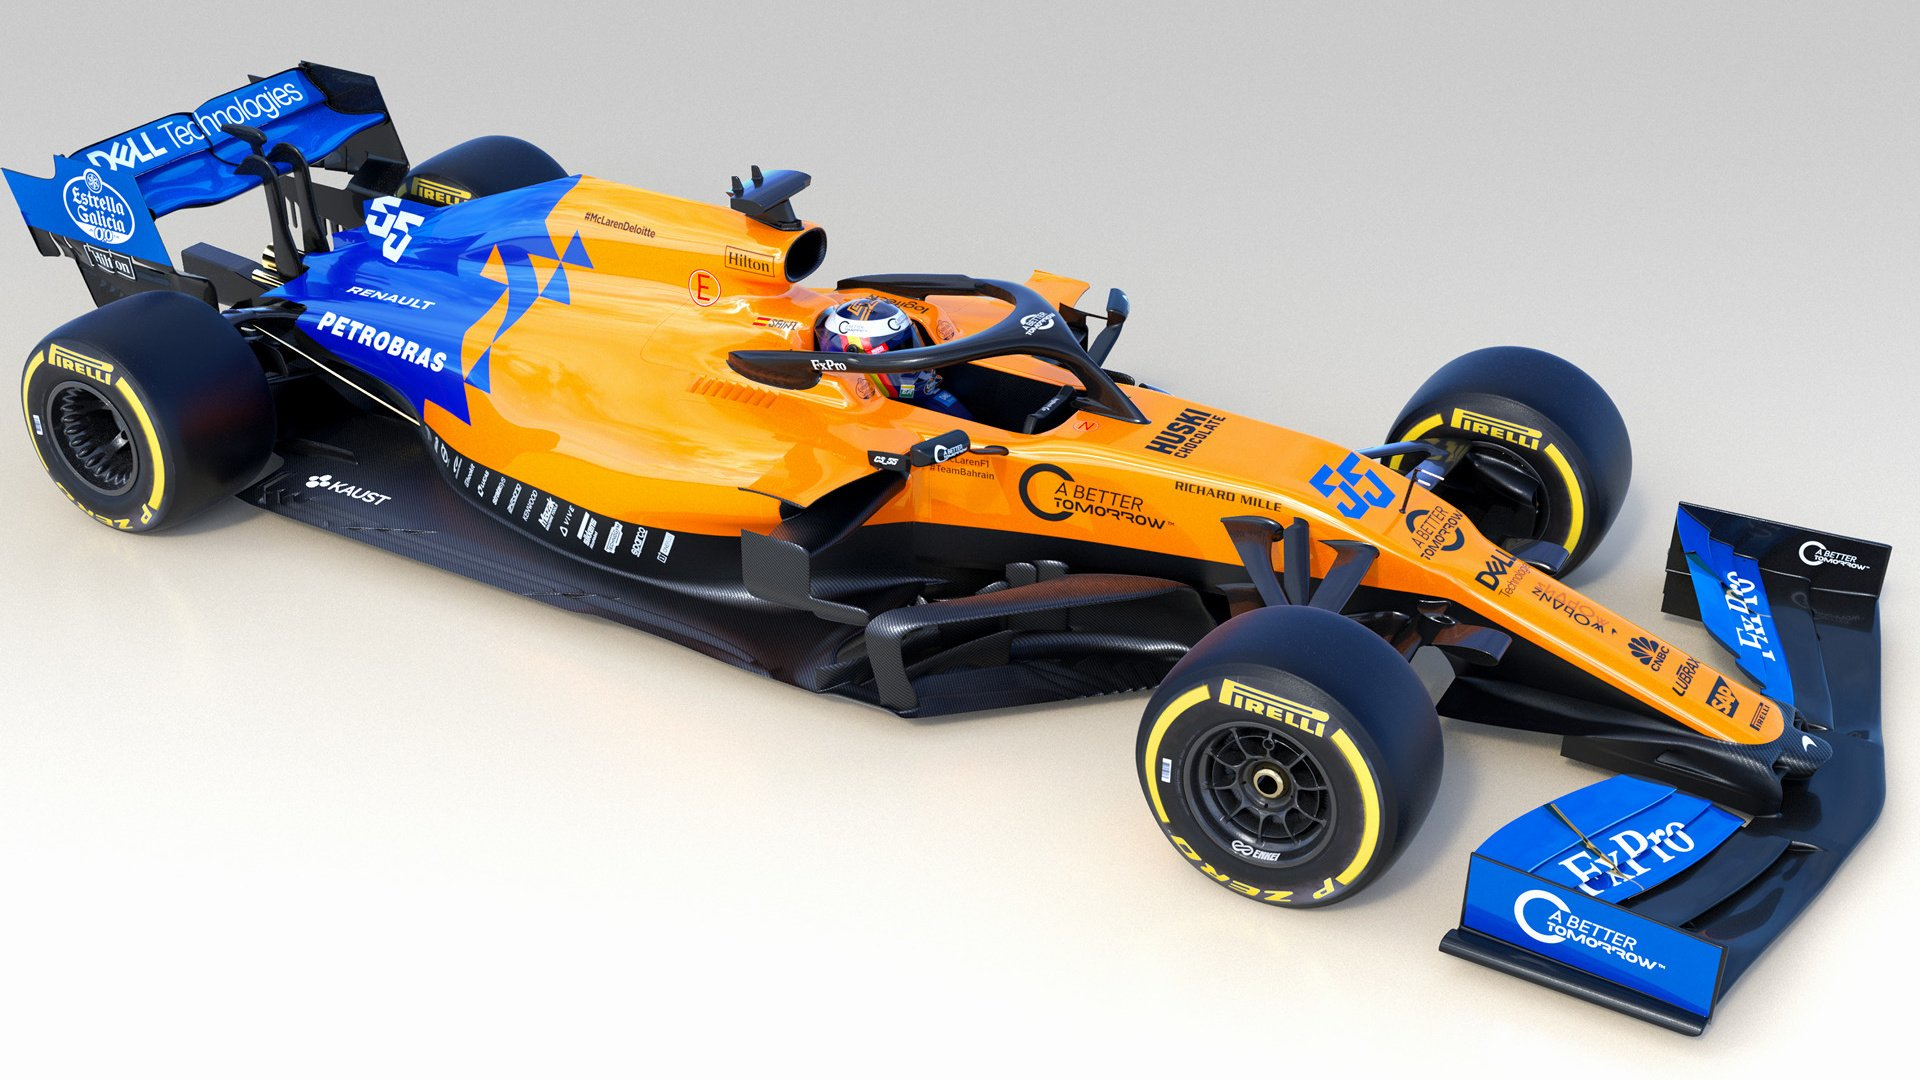 2019 McLaren MCL34   Wallpapers and HD Images Car Pixel 1920x1080